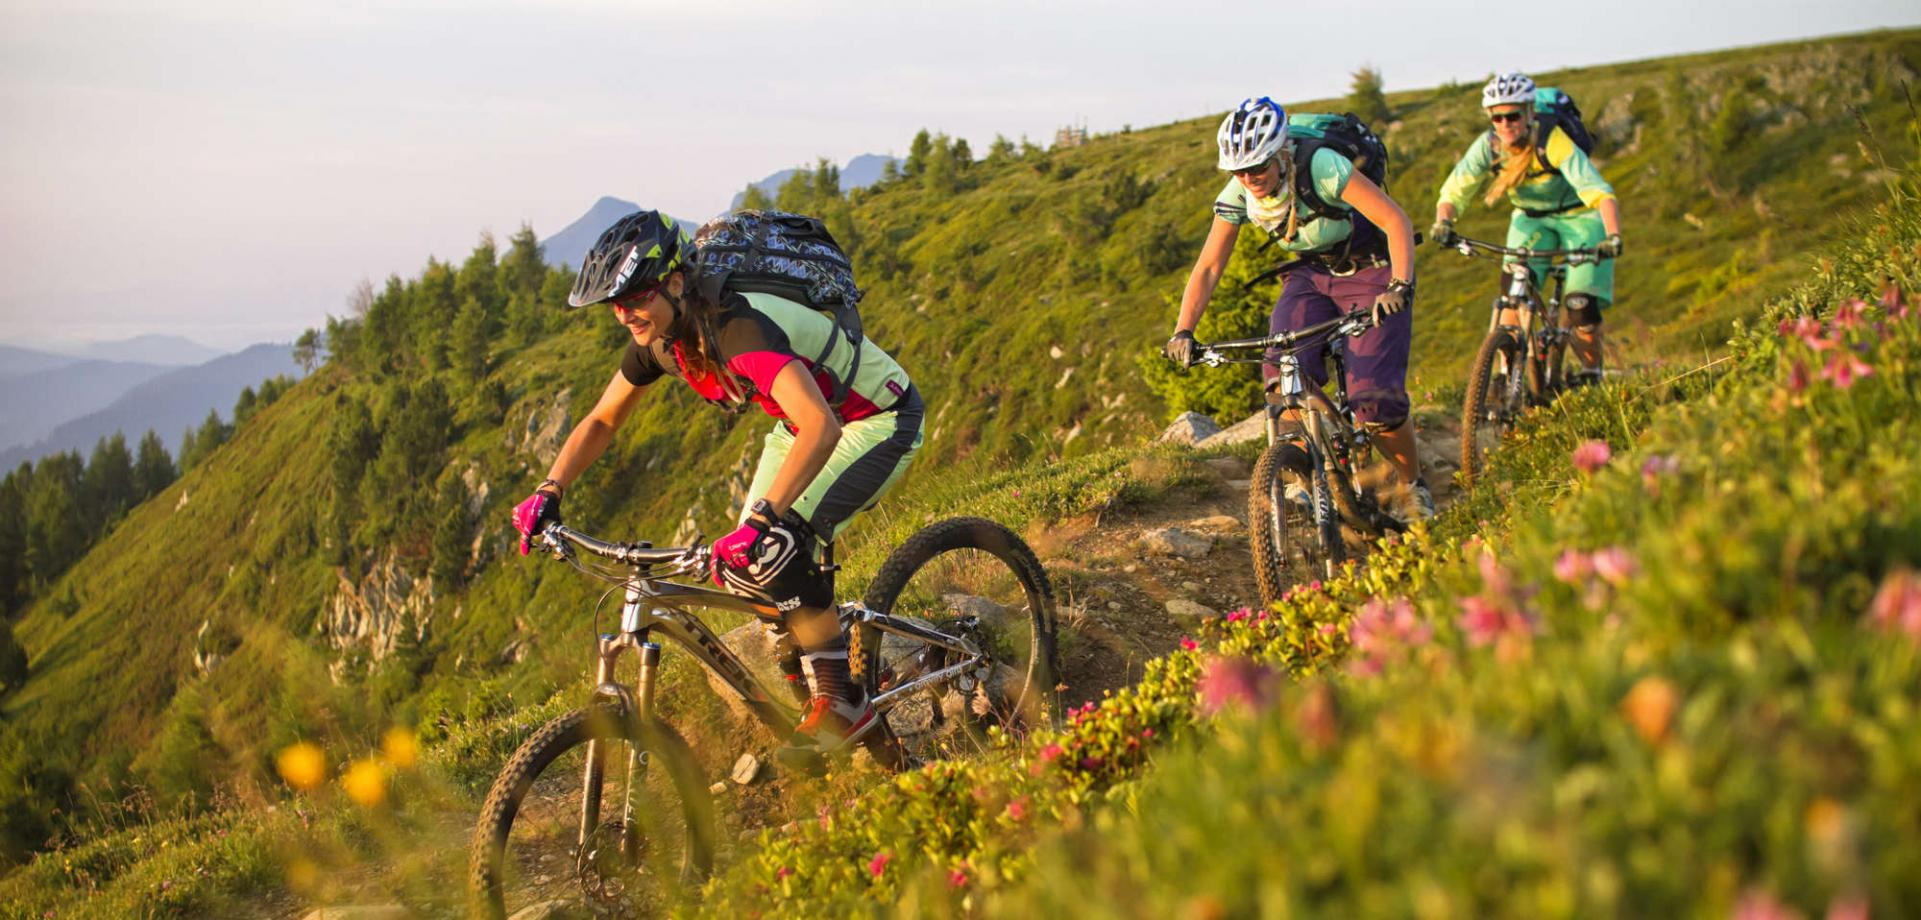 Eventi mountainbike con gite guidate e ex- professionisti